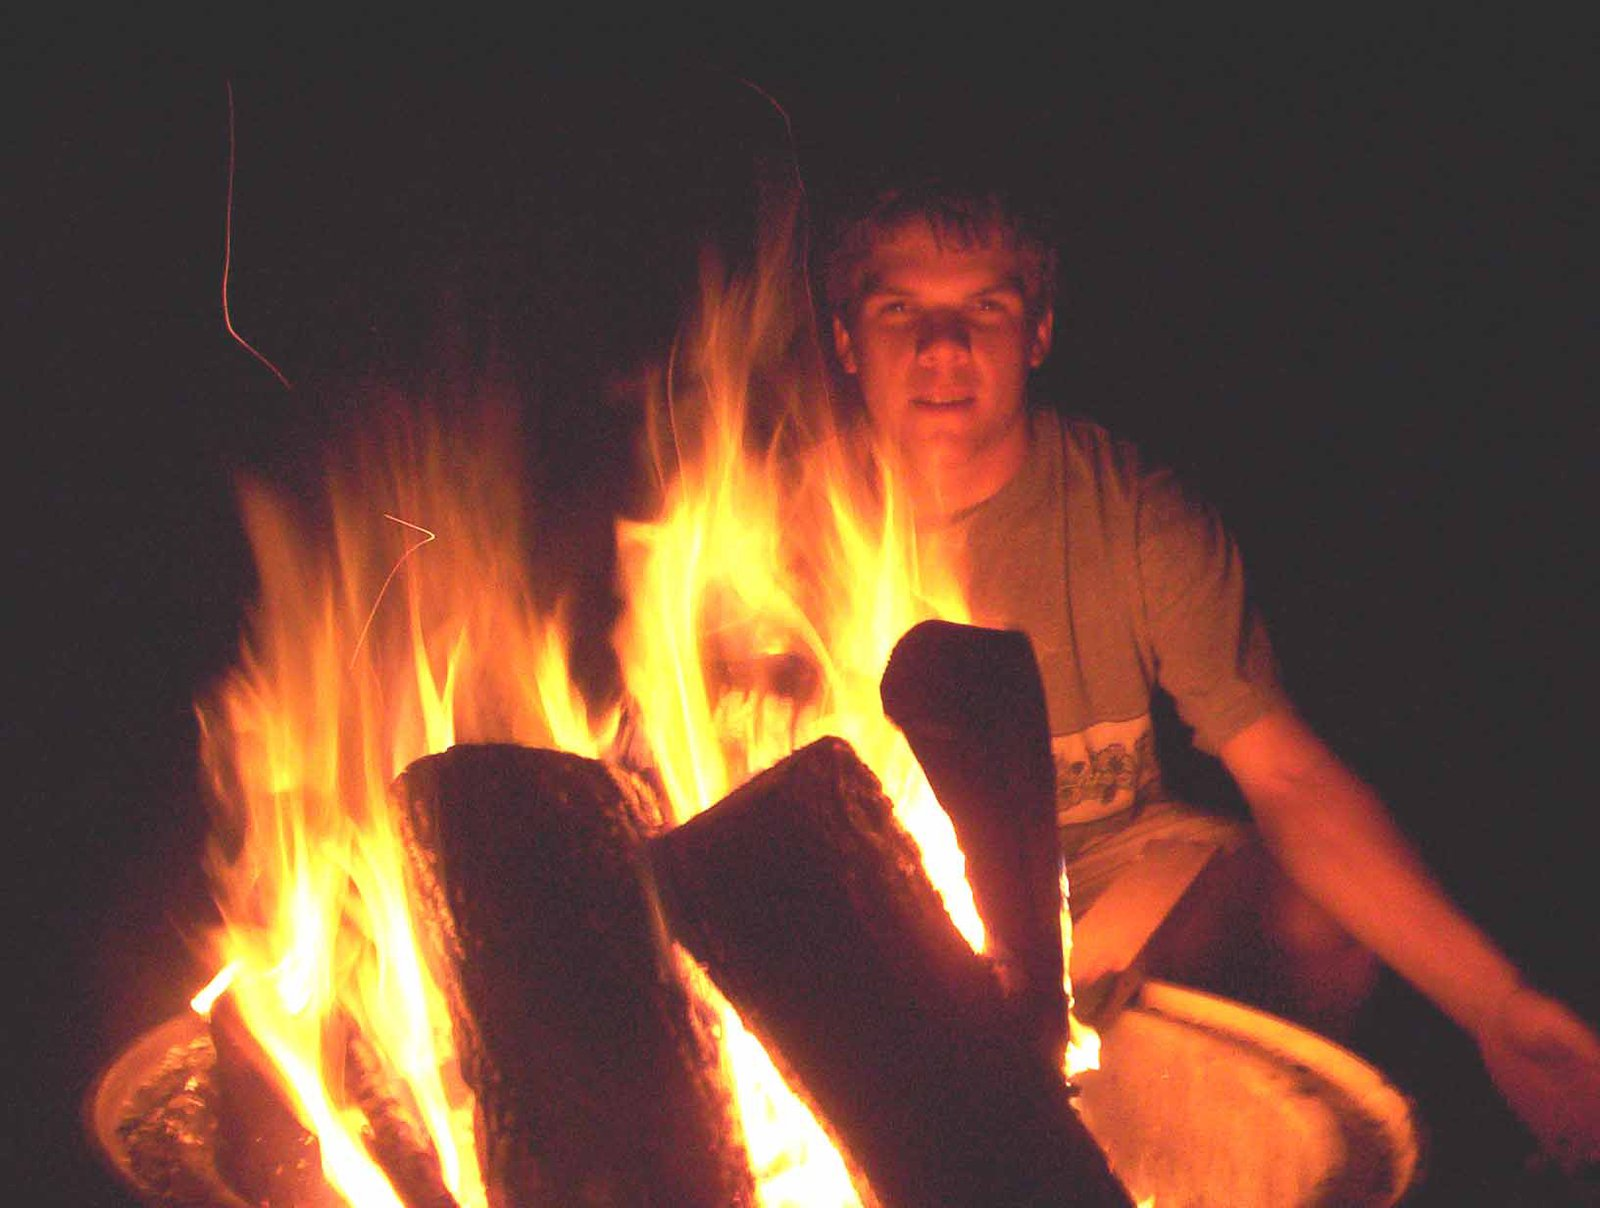 trippy fire picture